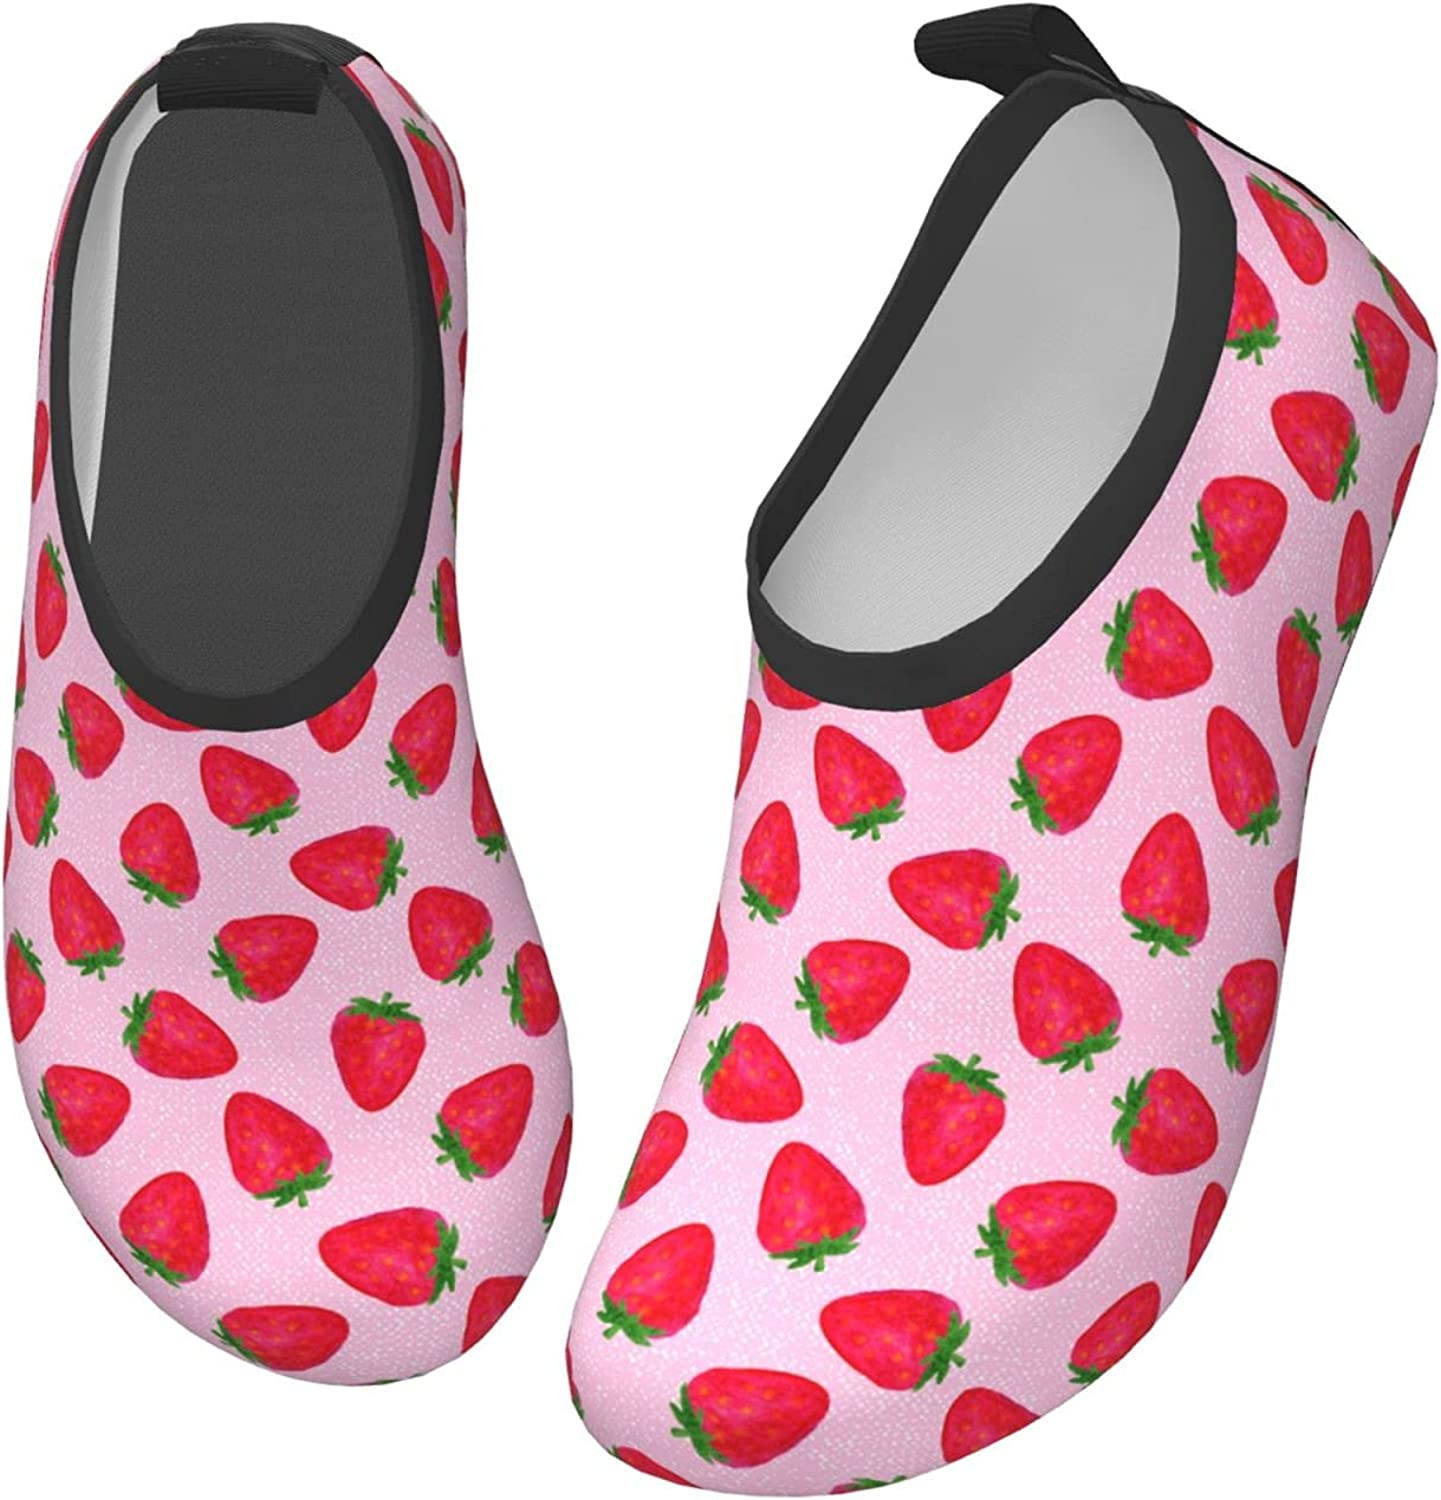 Jedenkuku Cute Pink Strawberry Fruit Children's Water Shoes Feel Barefoot for Swimming Beach Boating Surfing Yoga